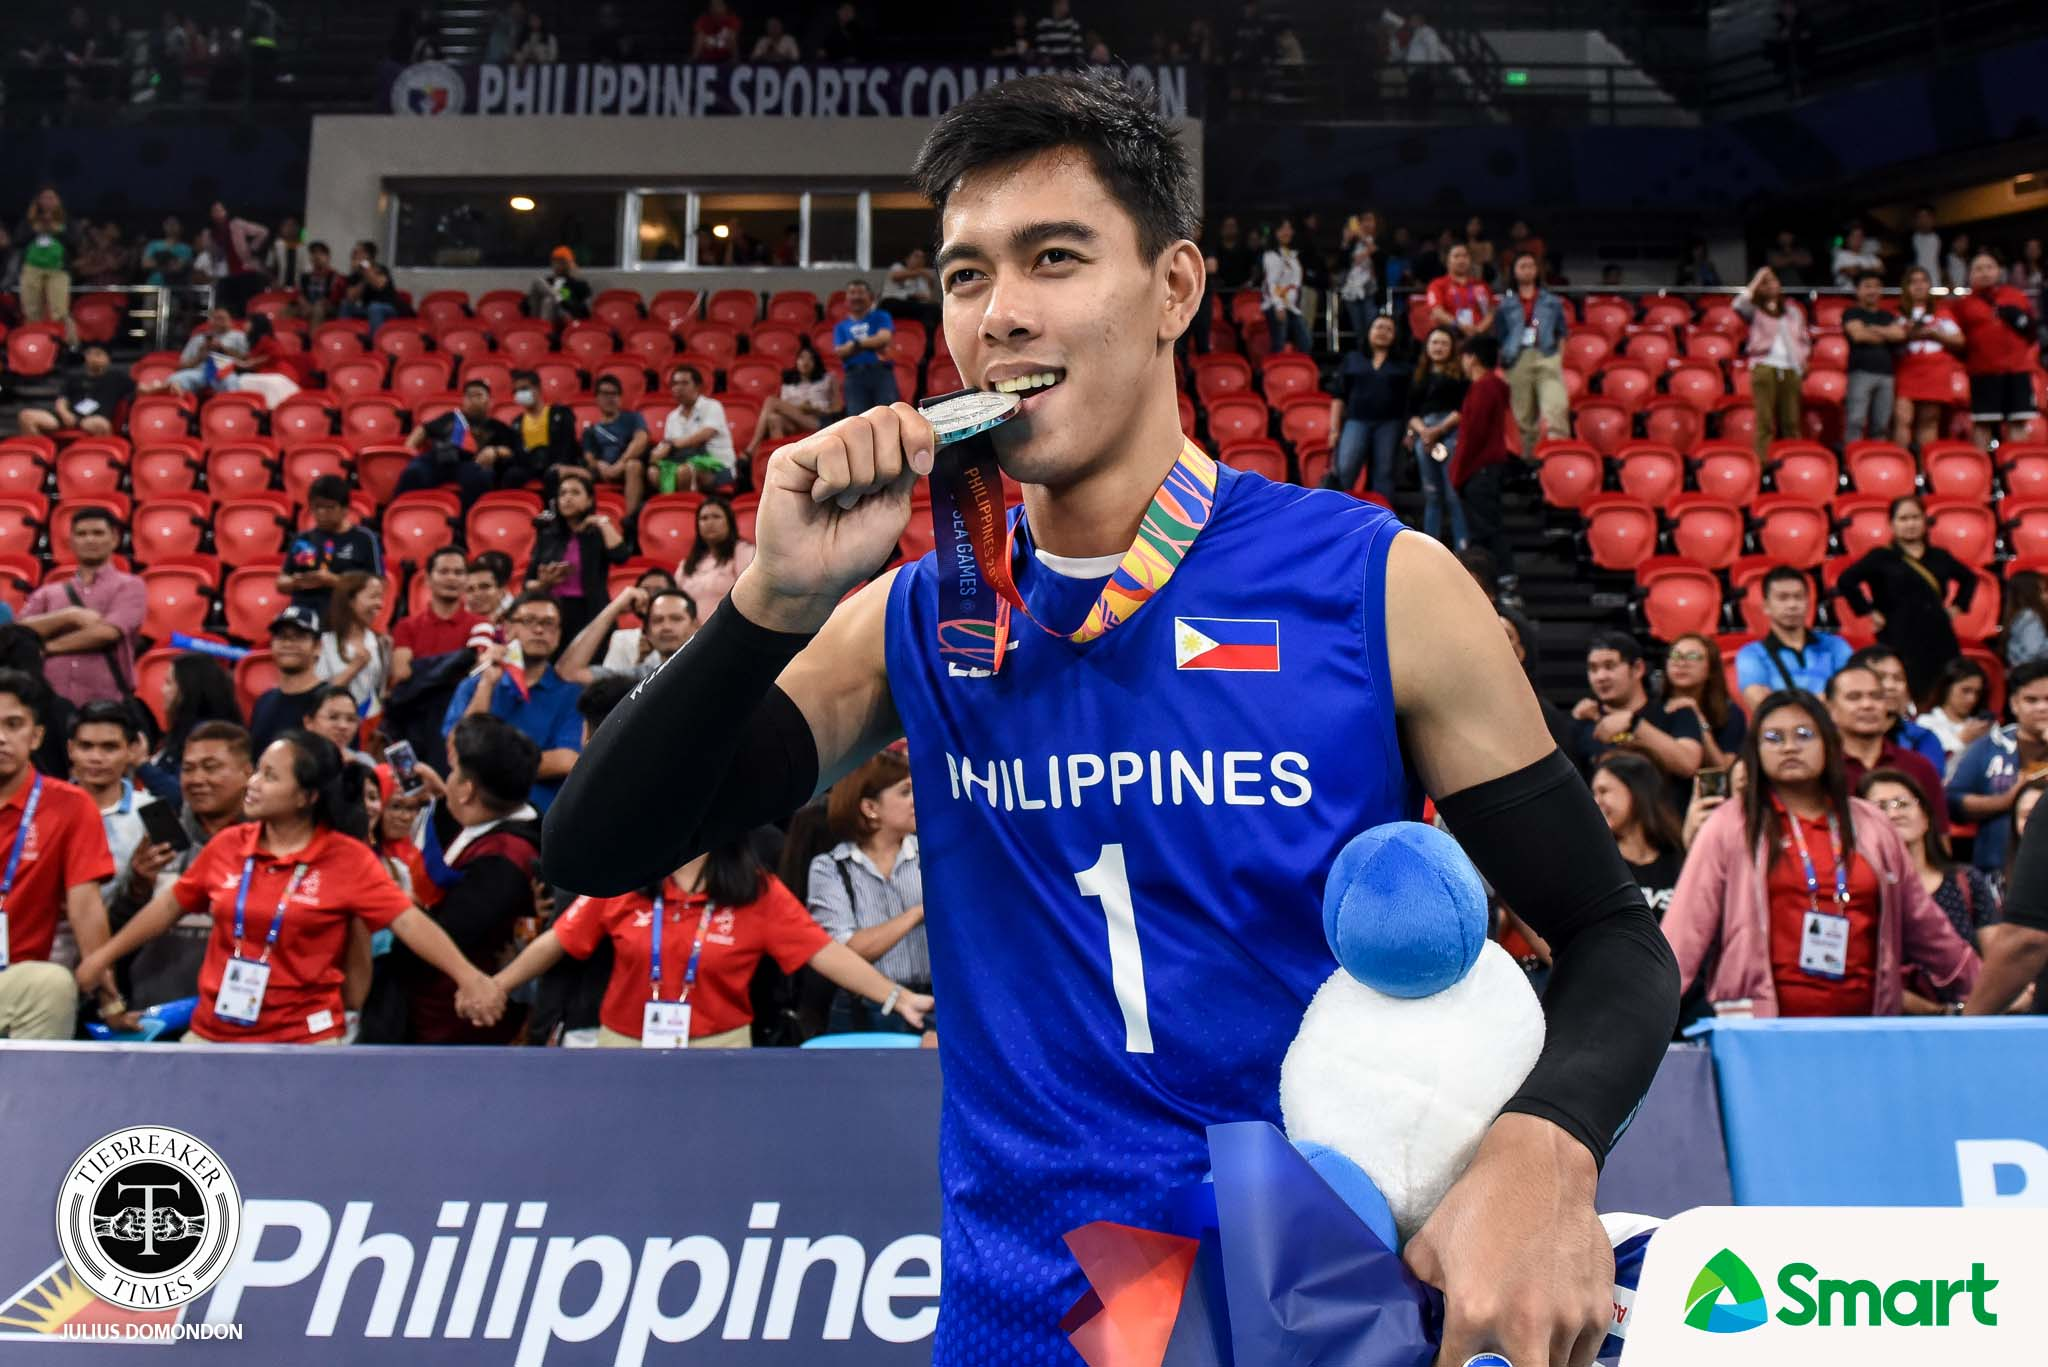 Tiebreaker Times Bagunas heads back to Japan a day after SEAG, leaves Philippines with silver 2019 SEA Games News Volleyball  Philippine Men's National Volleyball Team Bryan Bagunas 2019 SEA Games - Volleyball 2019 SEA Games